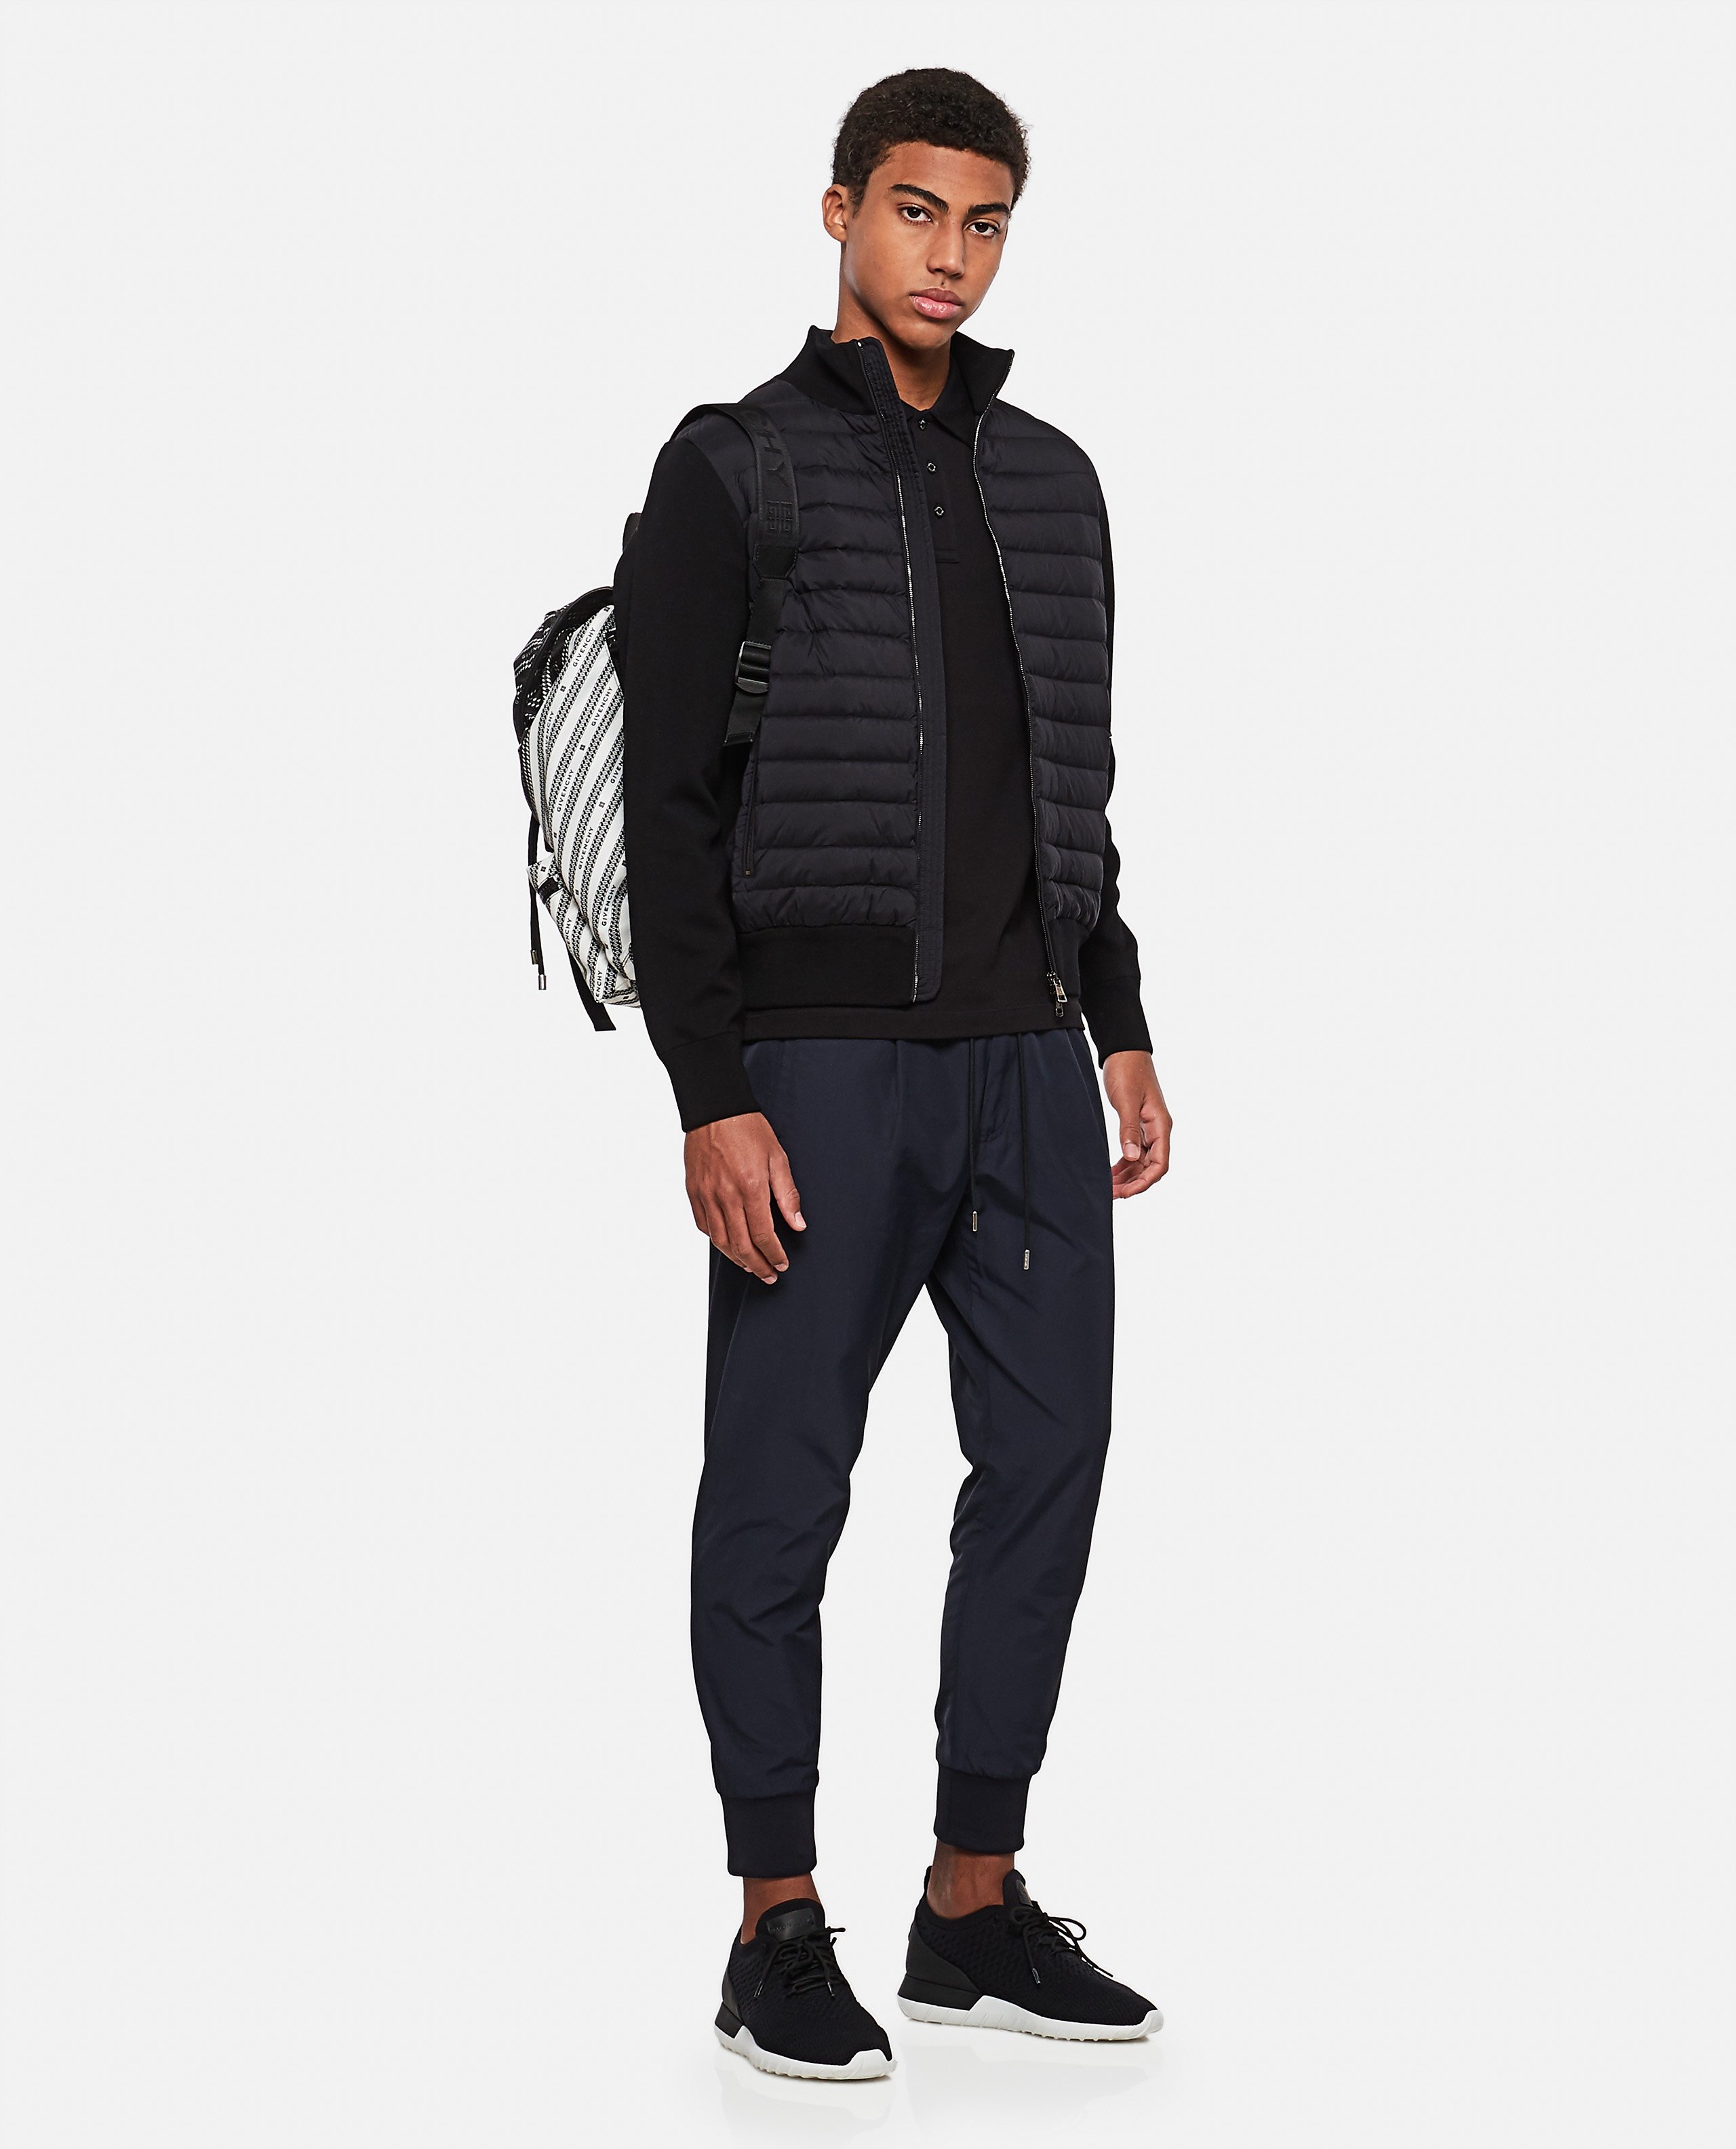 Tricot cardigan with padded detail Men Moncler 000315490046237 2